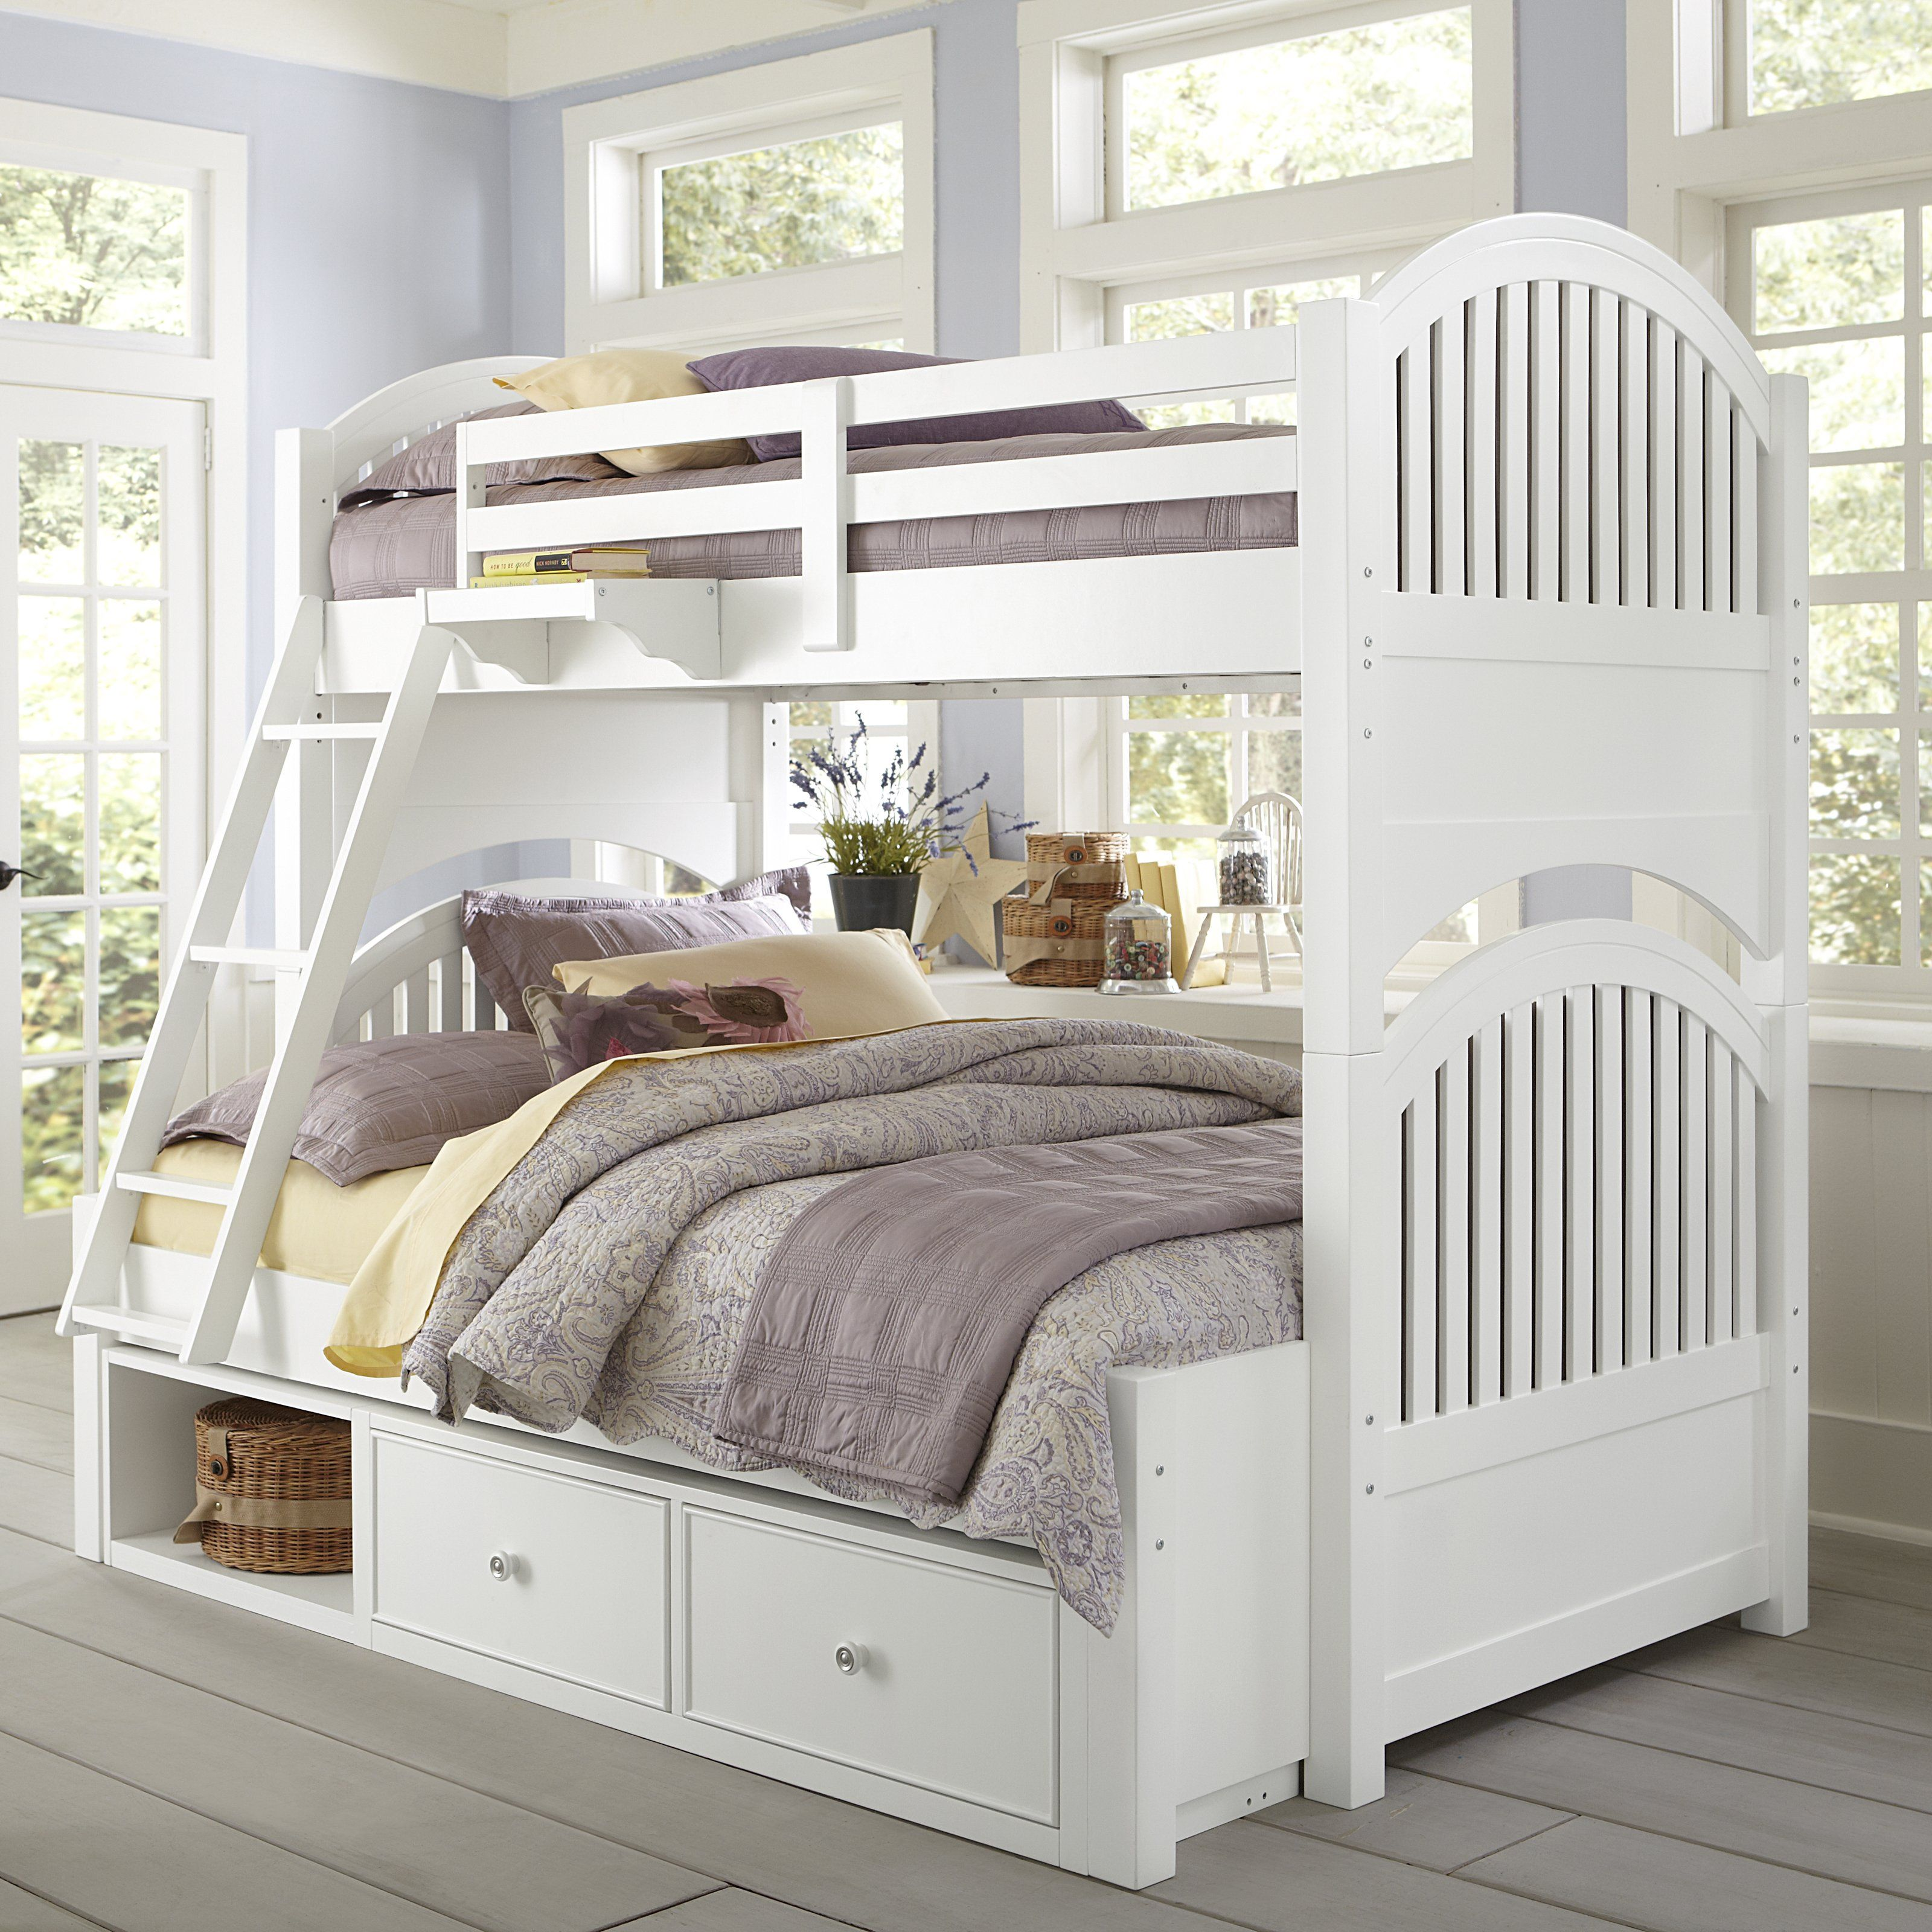 Adrian Twin over Full Bunk Bed 1119 hayneedle. White